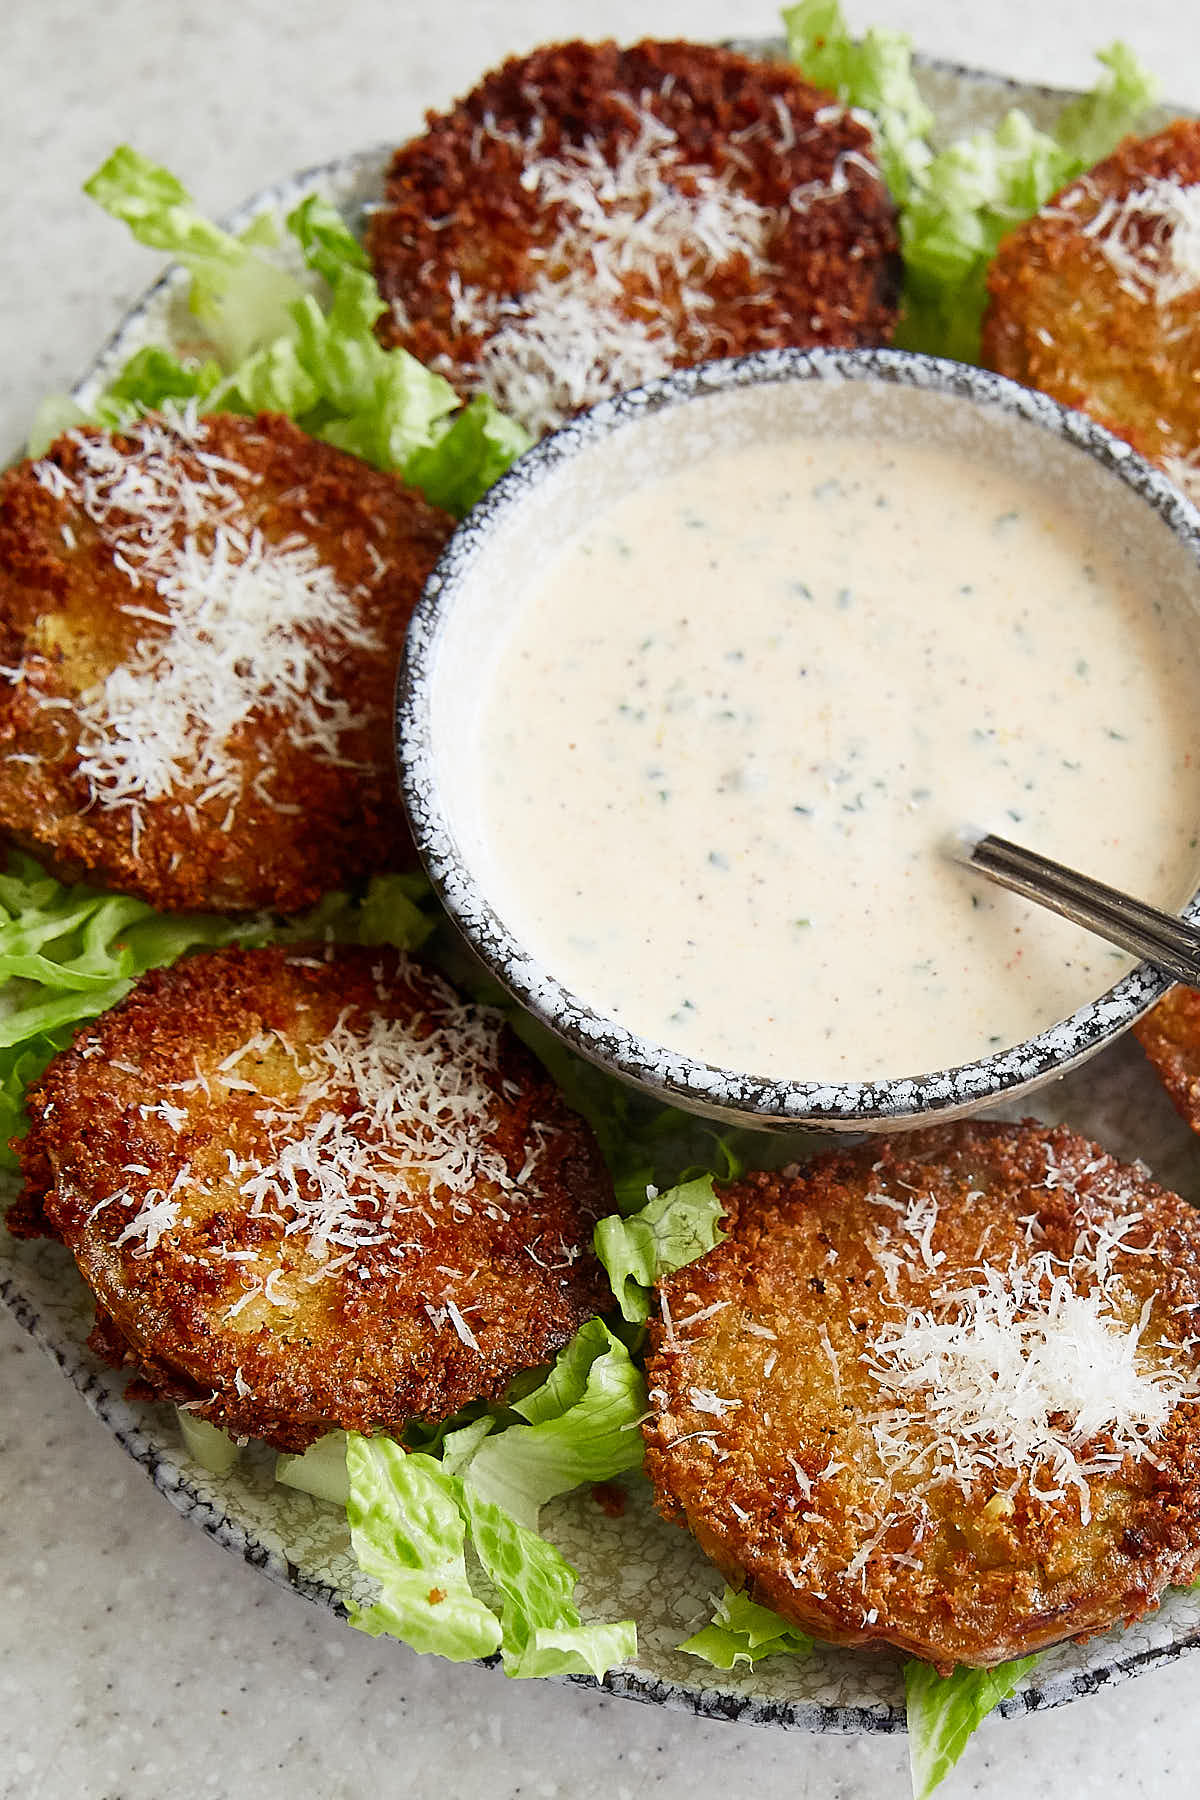 Fried Green Tomatoes on a platter with a bowl of dip in the middle.